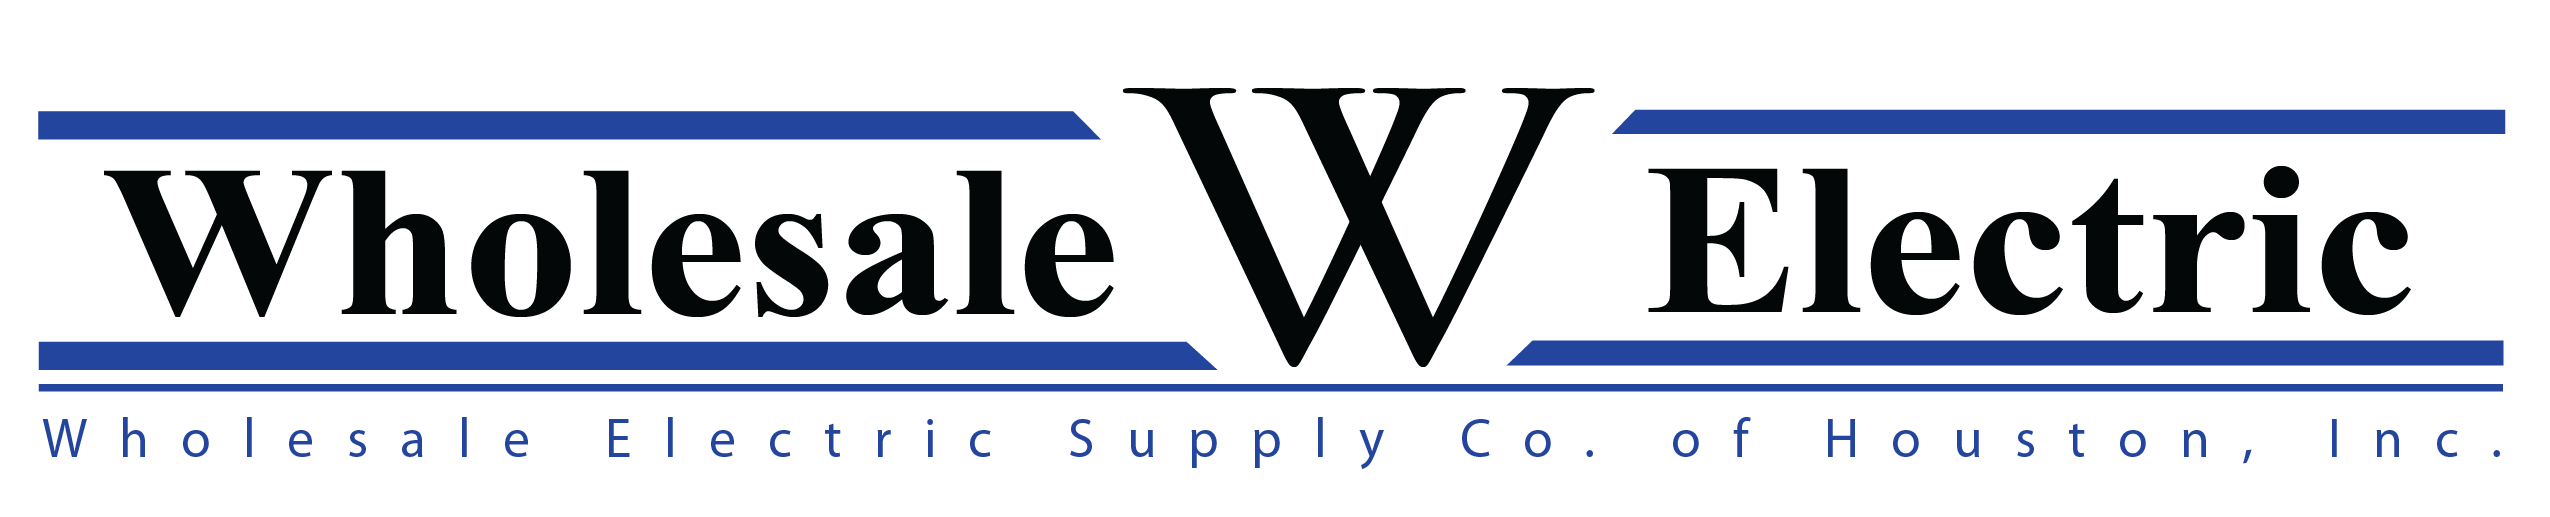 Wholesale Electric Supply